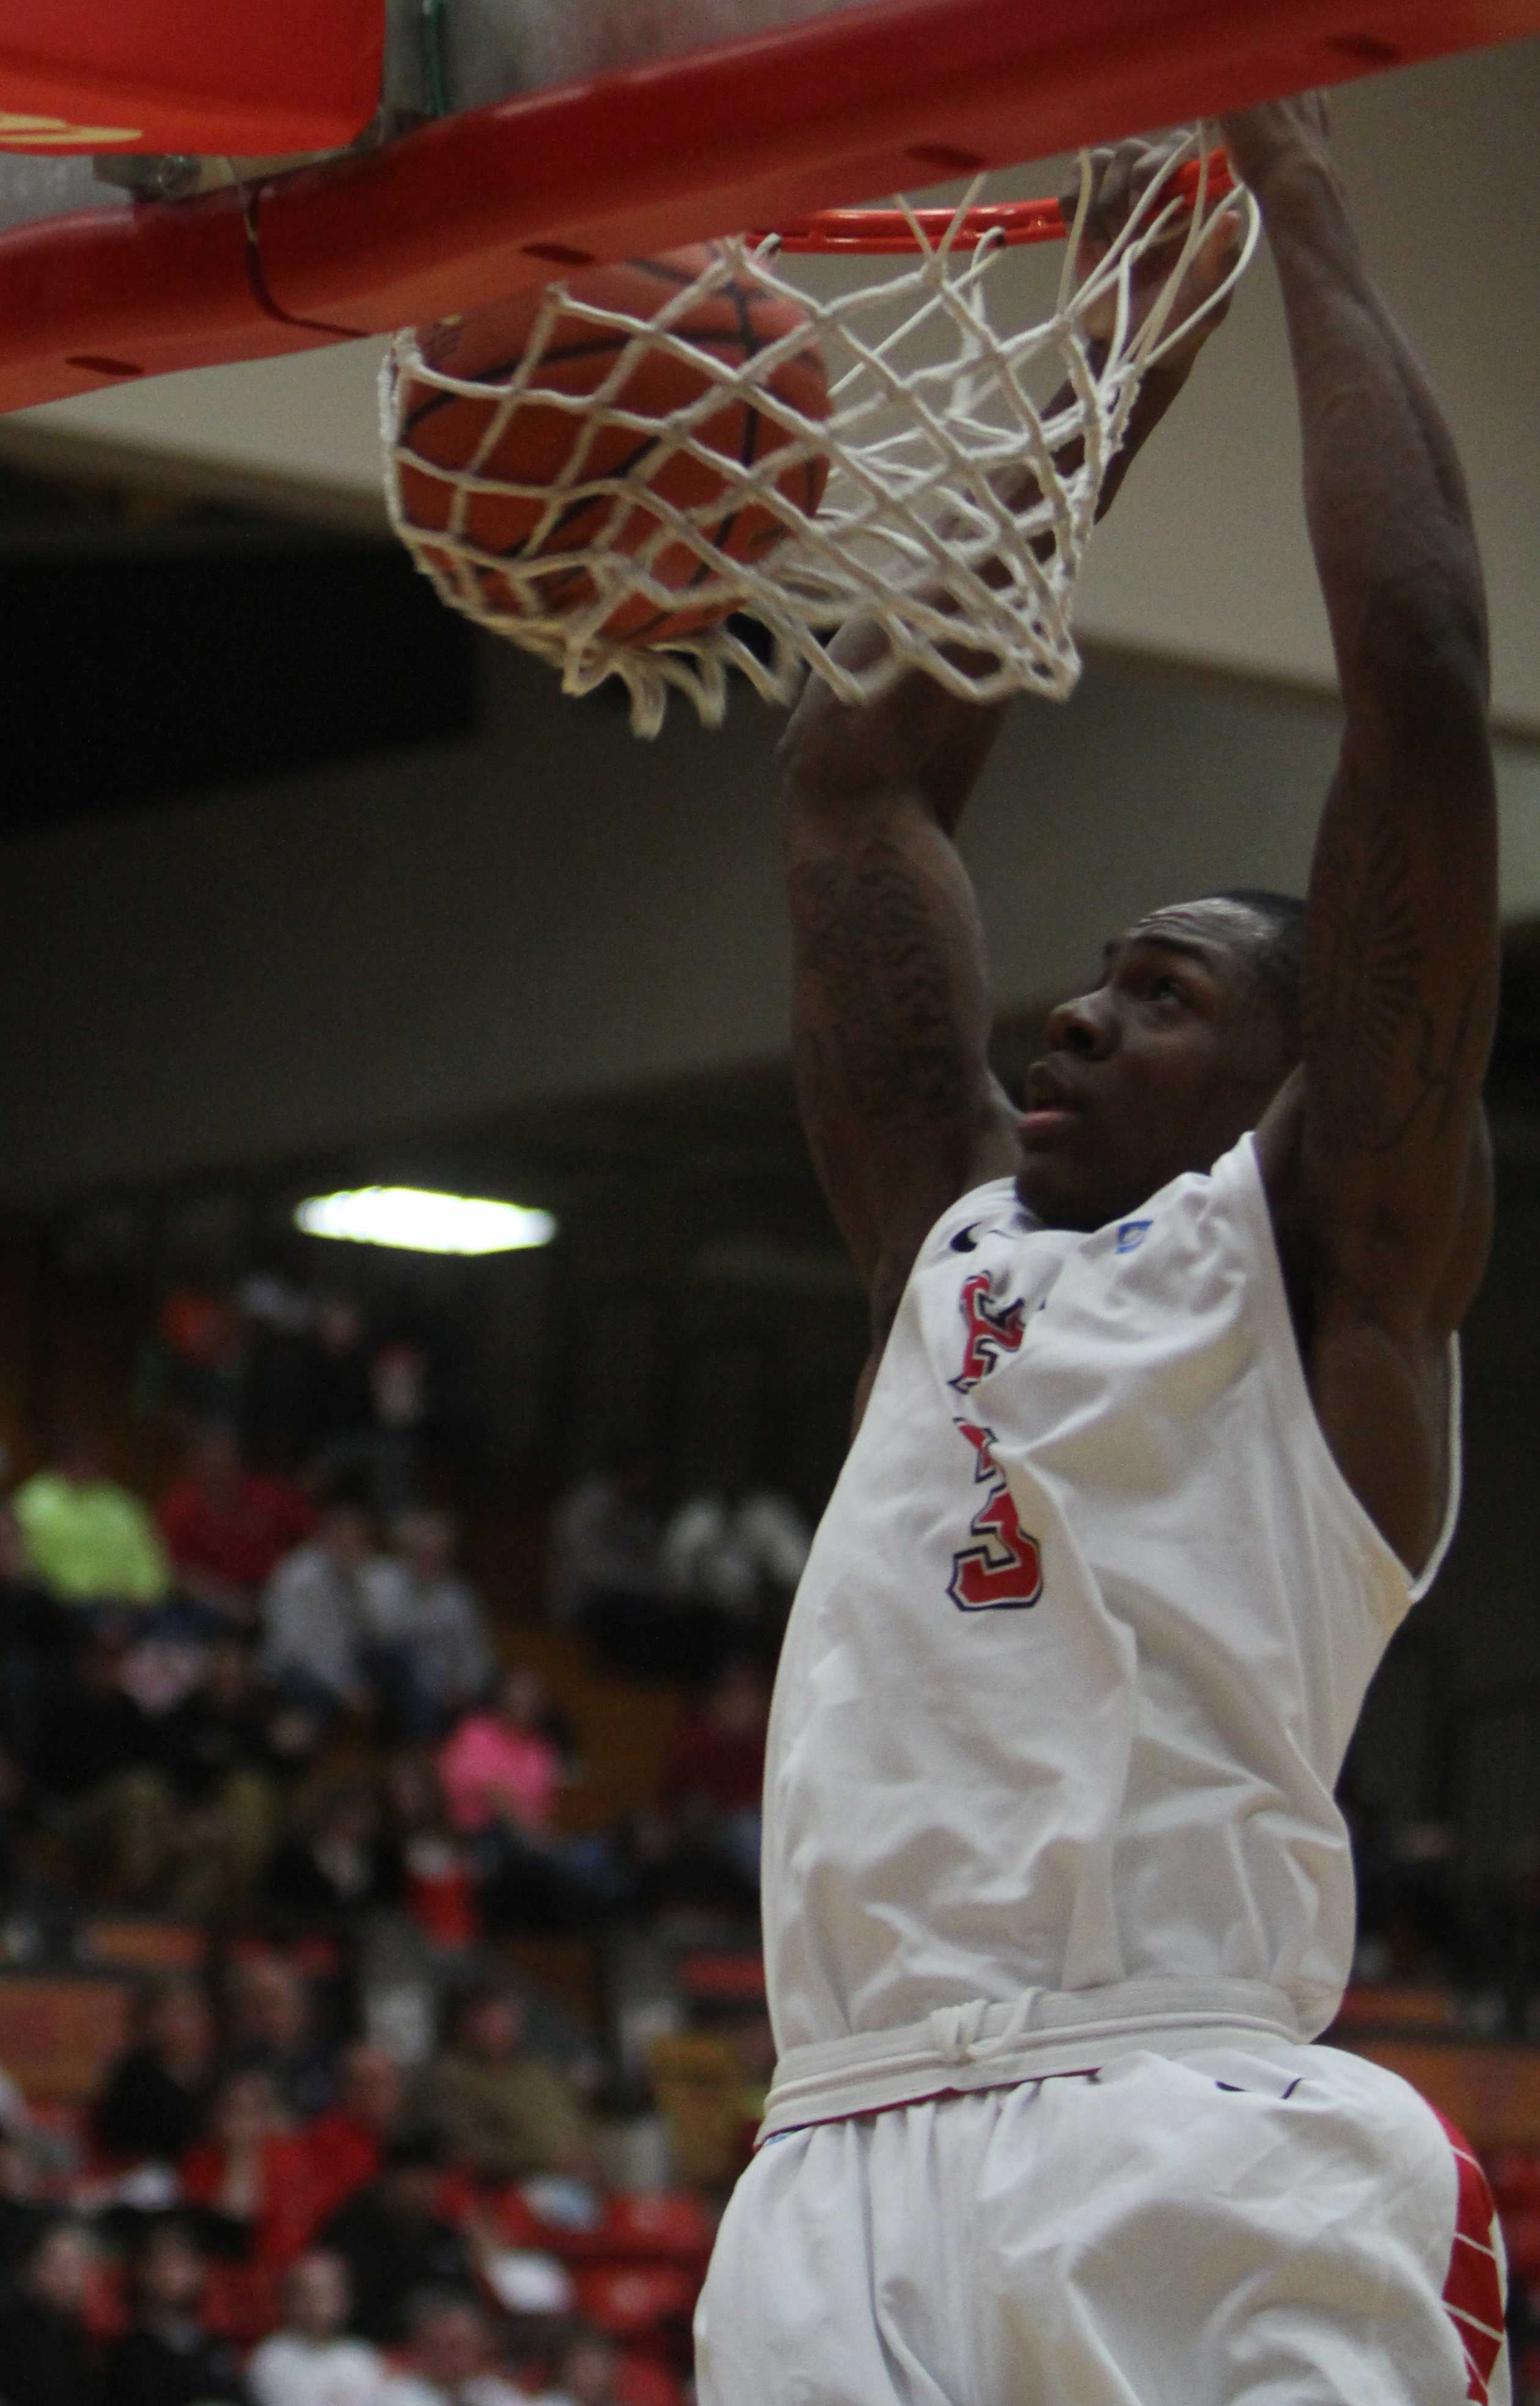 Youngstown State's Kendrick Perry dunks over Oakland University at Beeghly Center on Saturday. Perry dunked on YSU's basket for possibly the final time in his collegiate career. Photo by Dustin Livesay/The Jambar